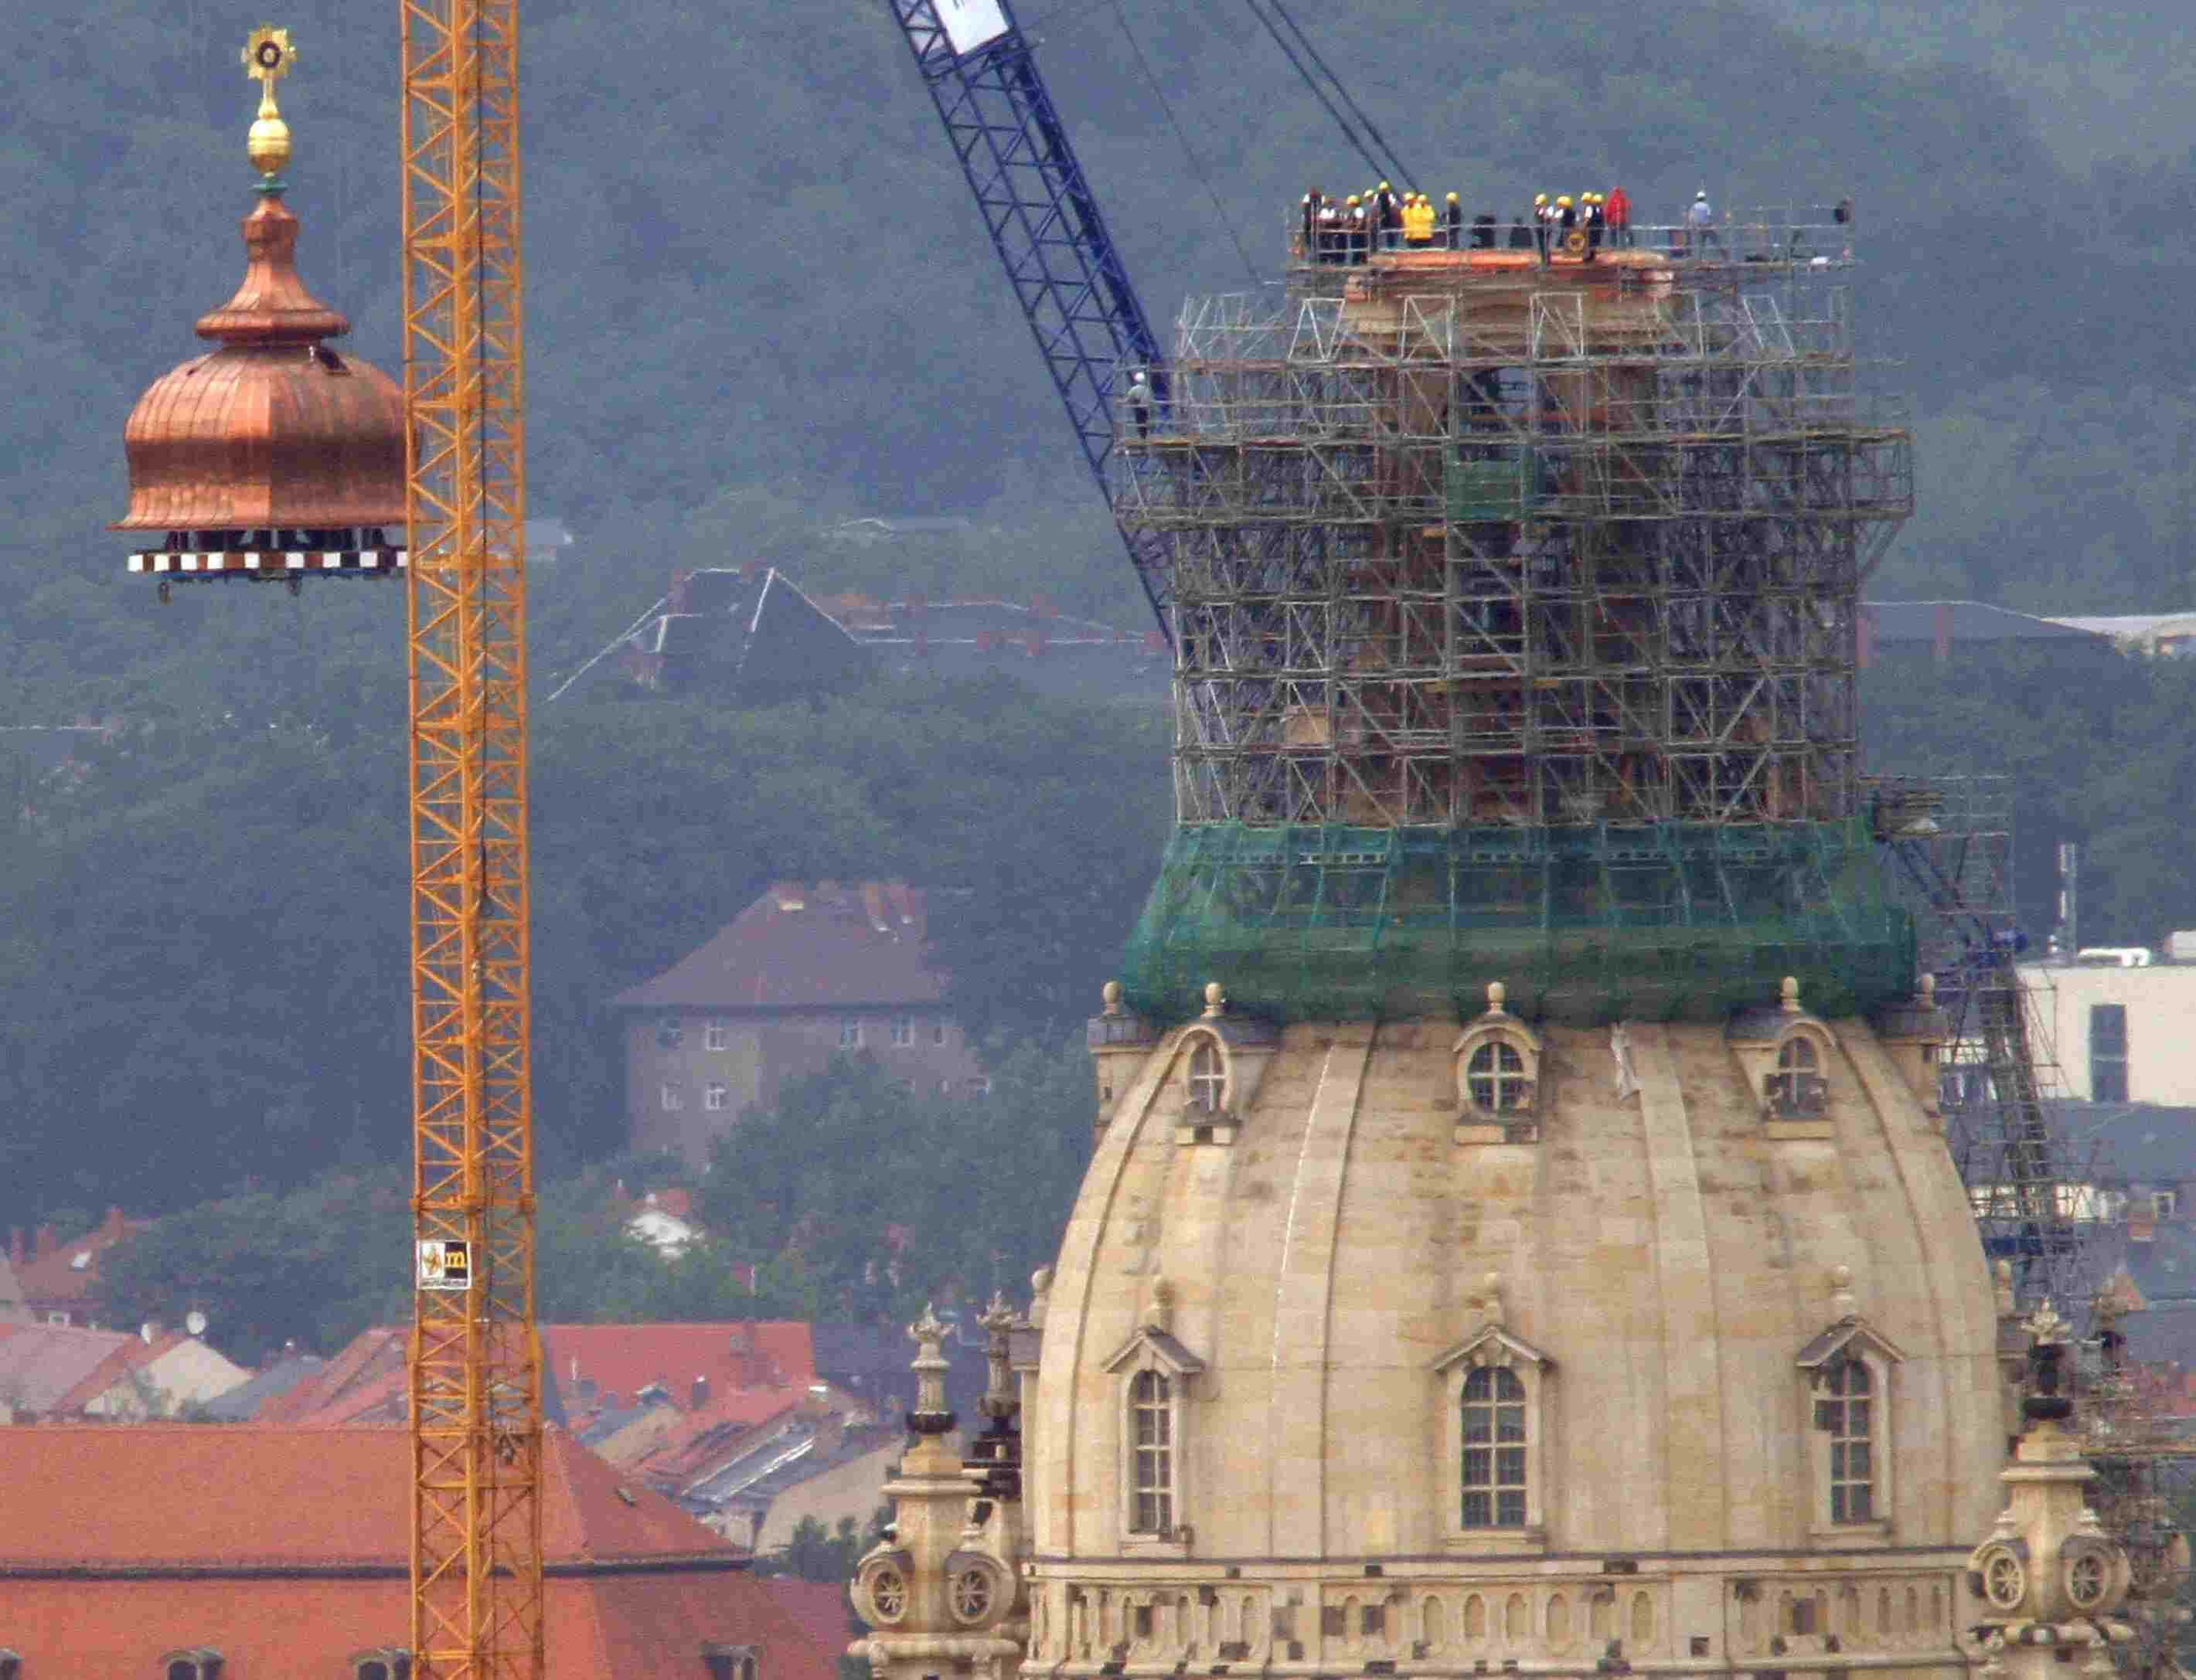 A crane lifts the copper cupola and golden cross to the top of the reconstructed Frauenkirche in Dresden, Germany